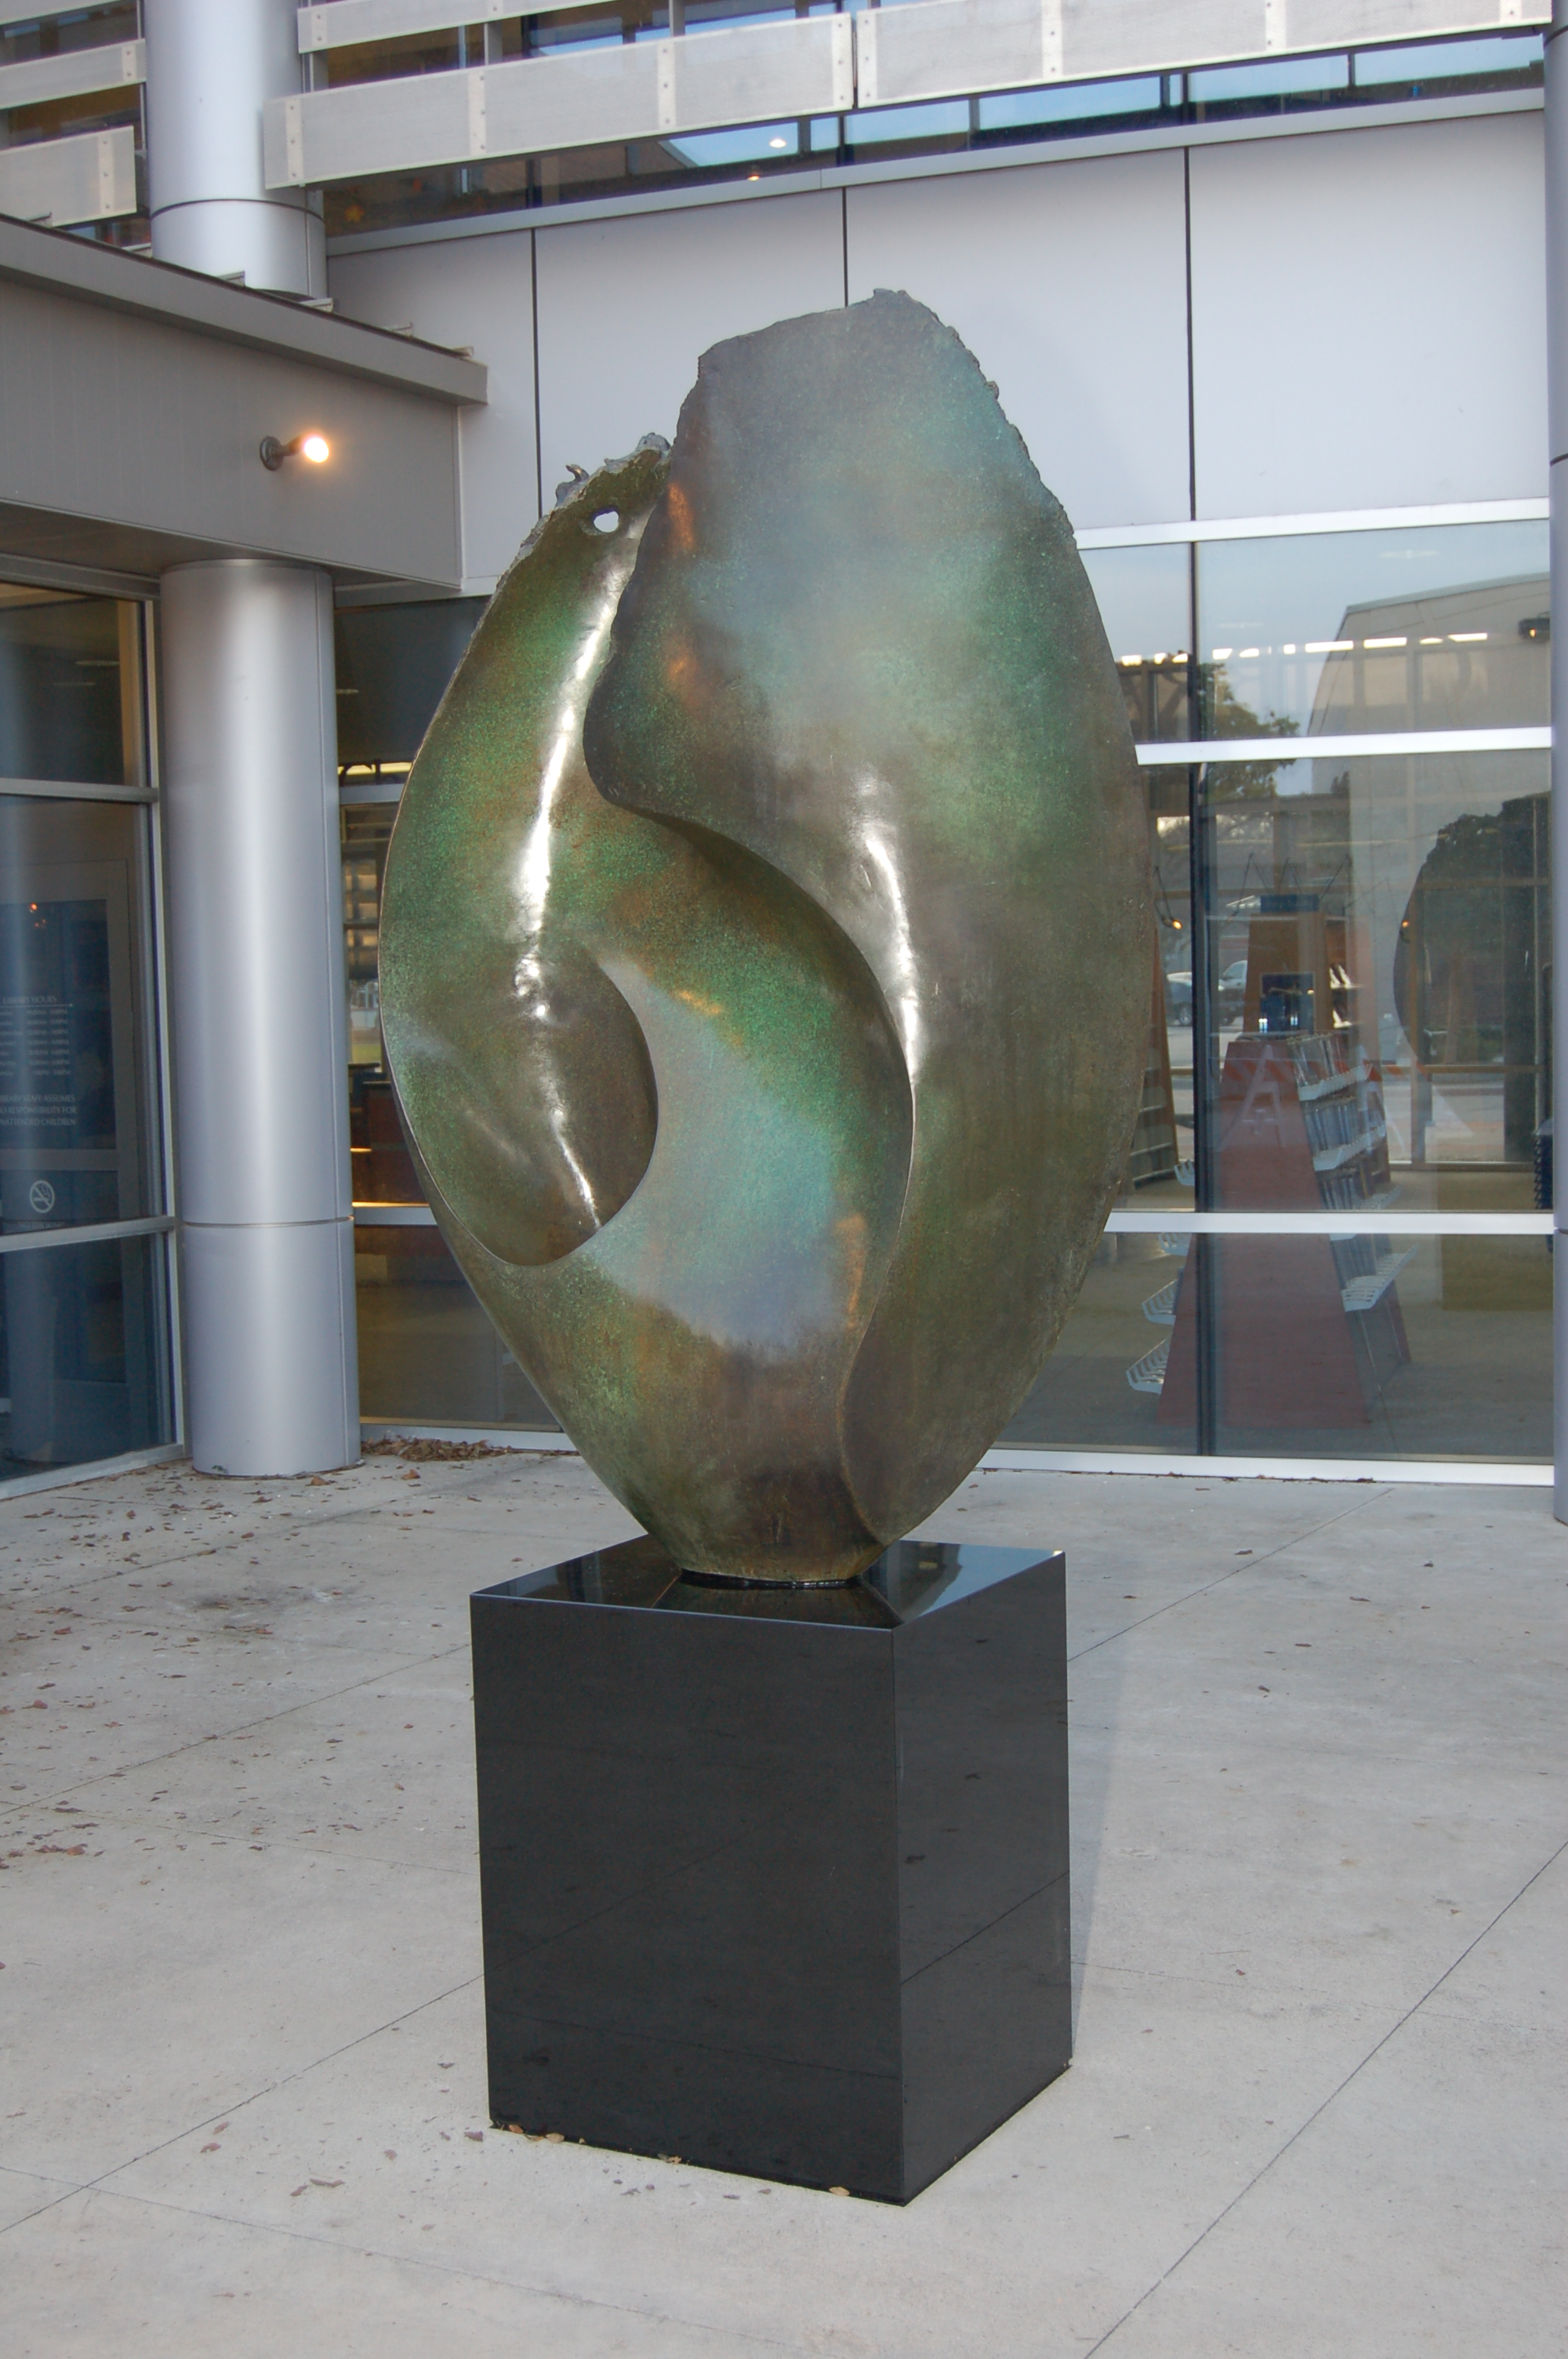 Oceano, Roger White Stoller, is a part of Allen's growing public art collection